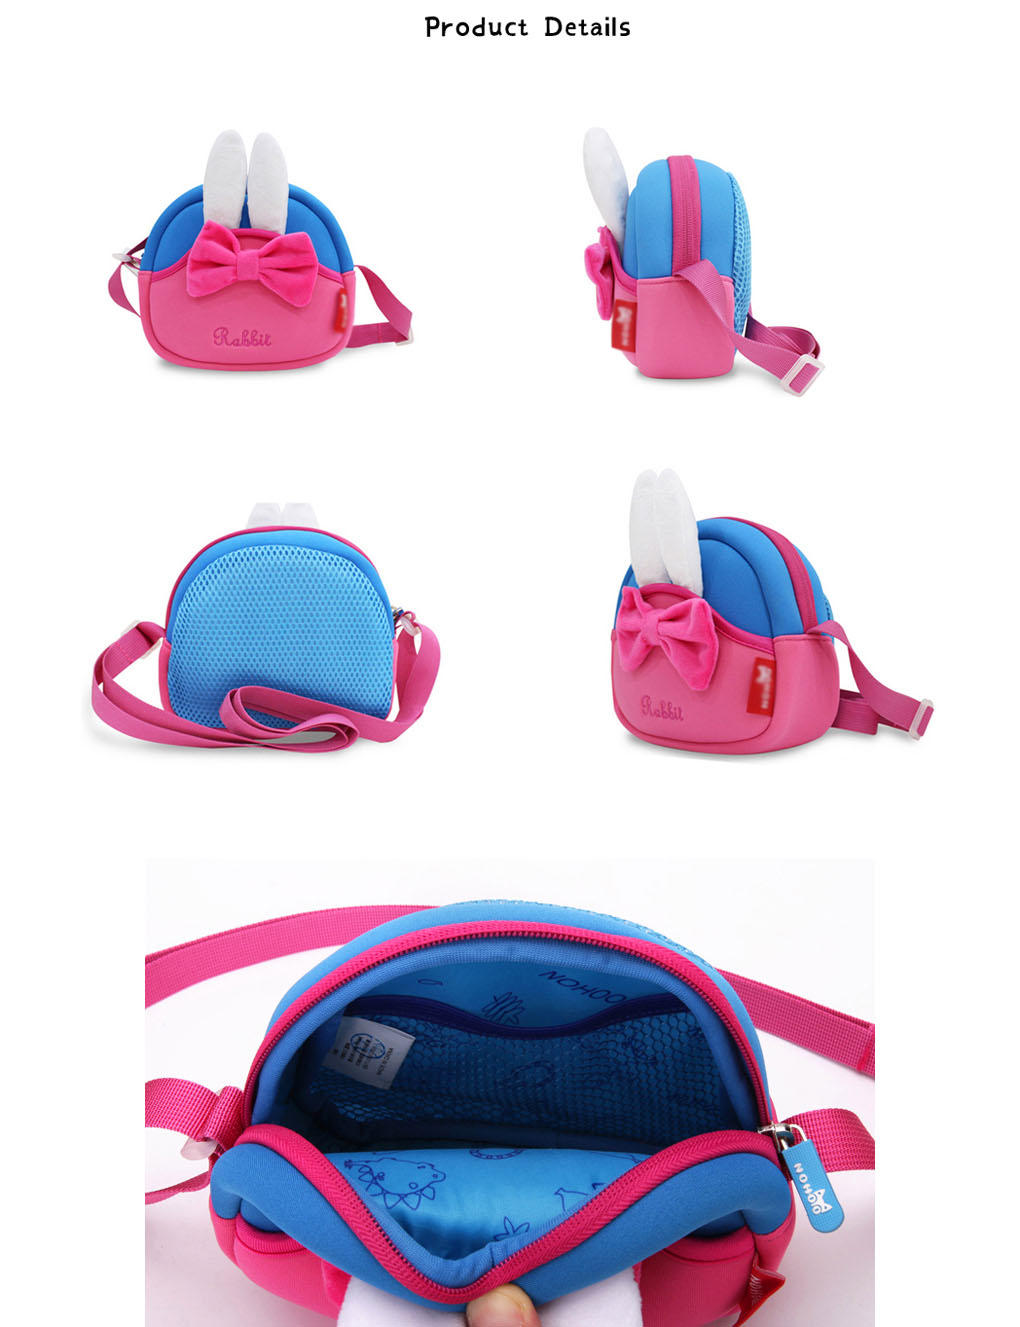 Nohoo Children Products-Professional Mini Messenger Bag Messenger Bag Style Manufacture